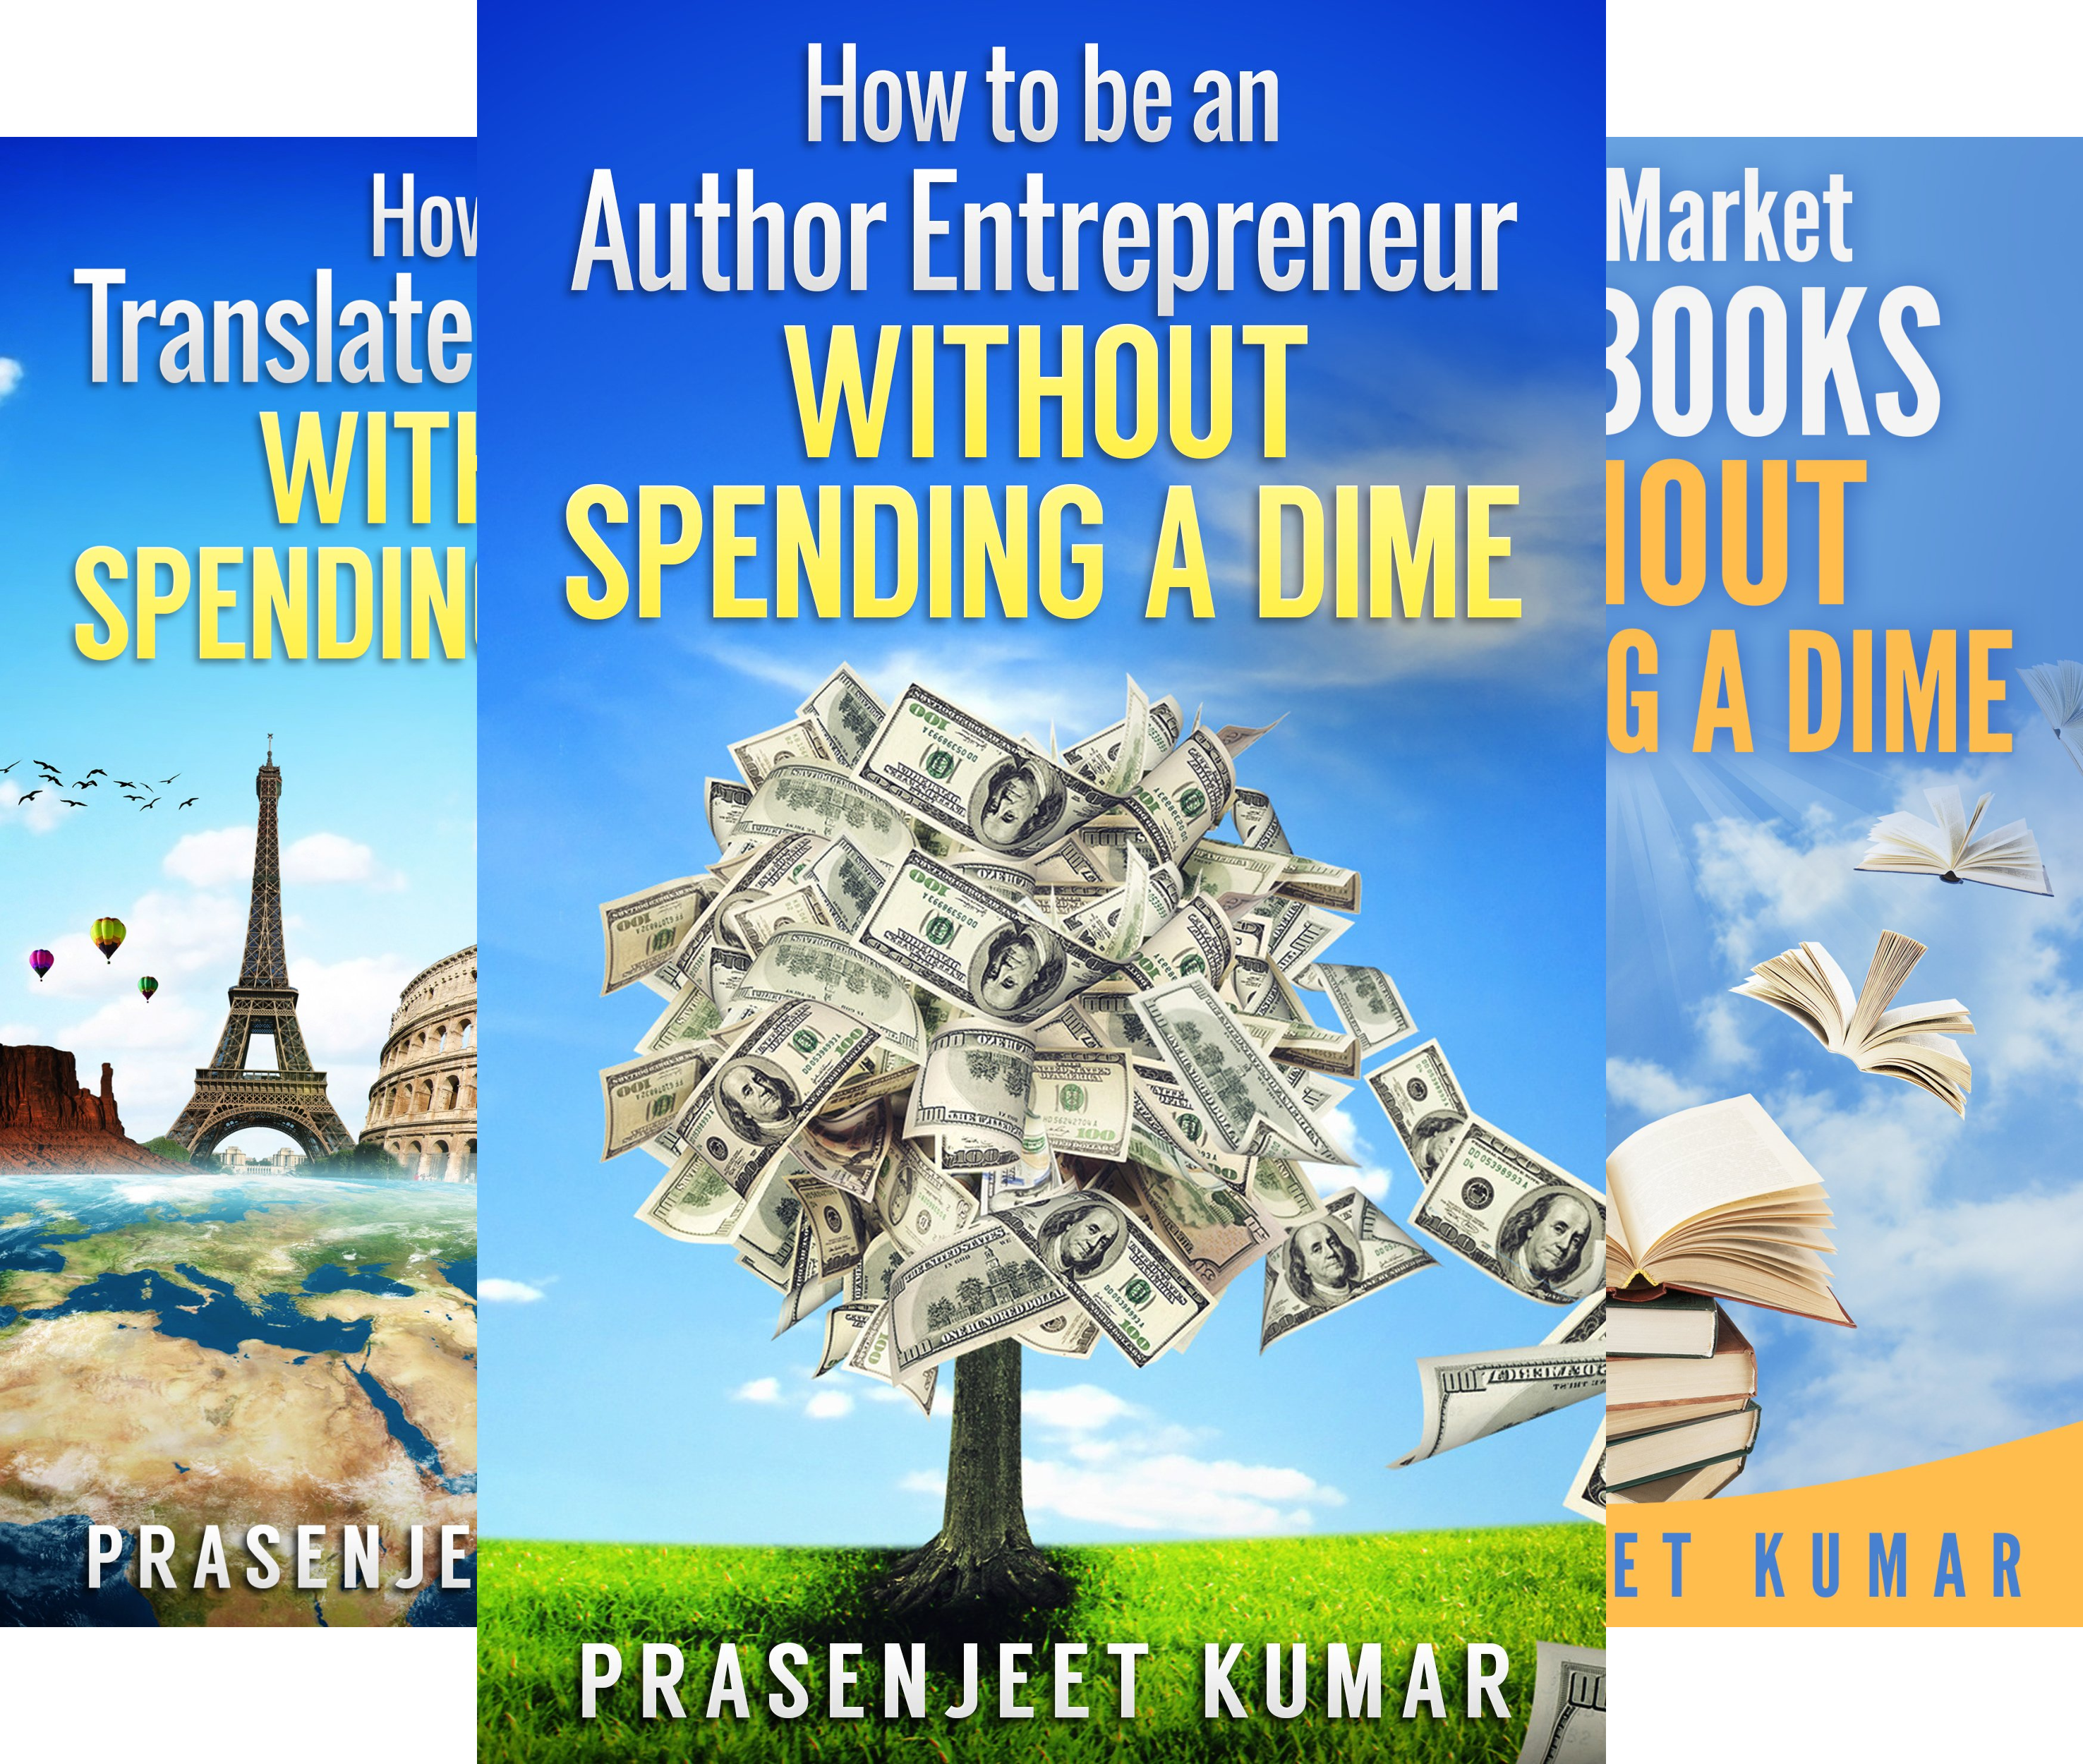 Self-Publishing Without Spending a Dime (4 Book Series)